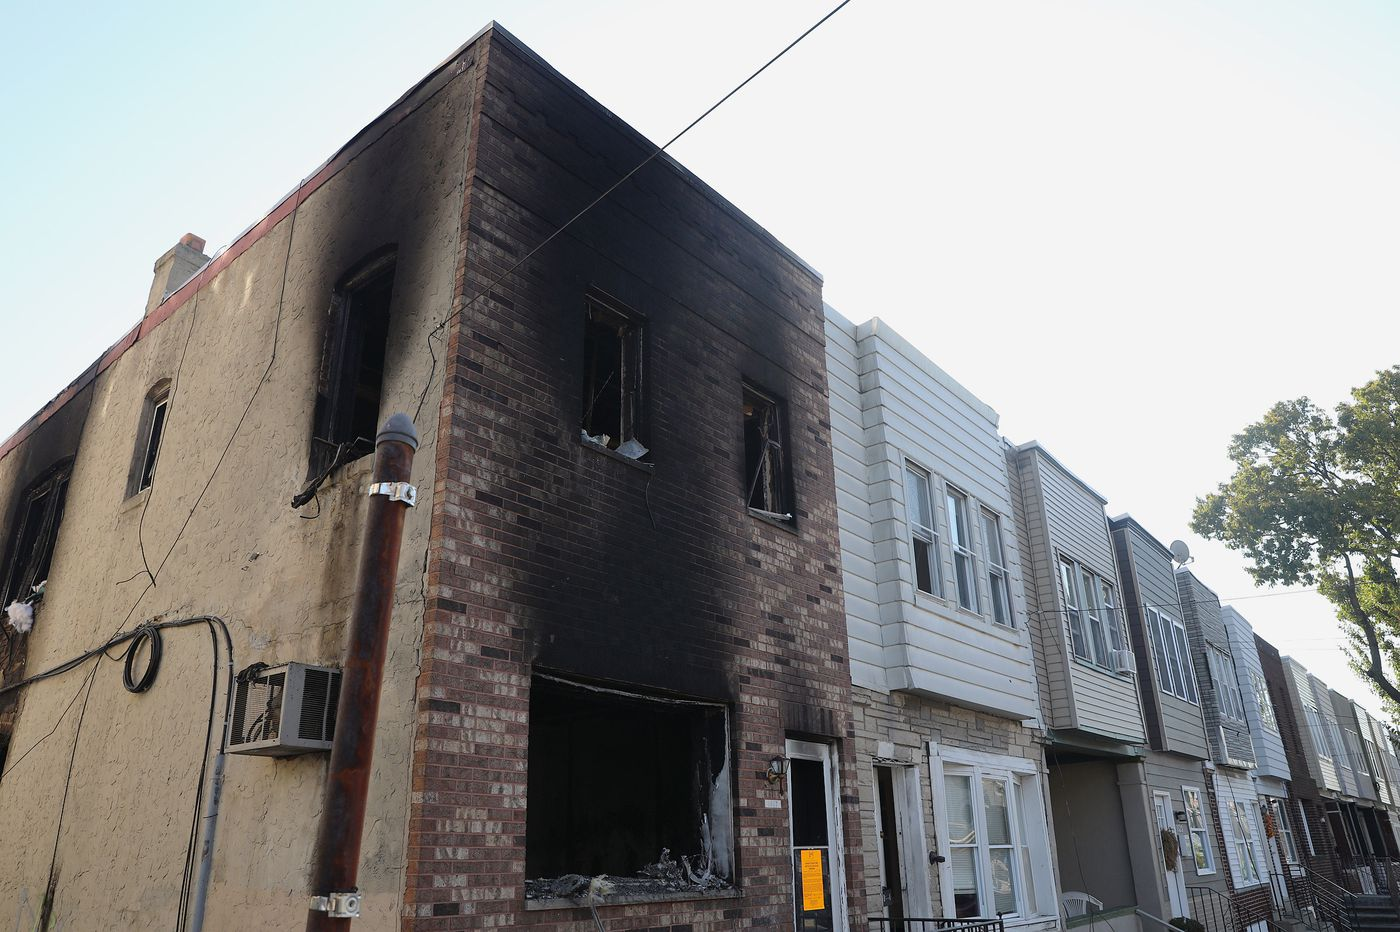 2 children die, an infant among 4 people hospitalized after a Philly house fire